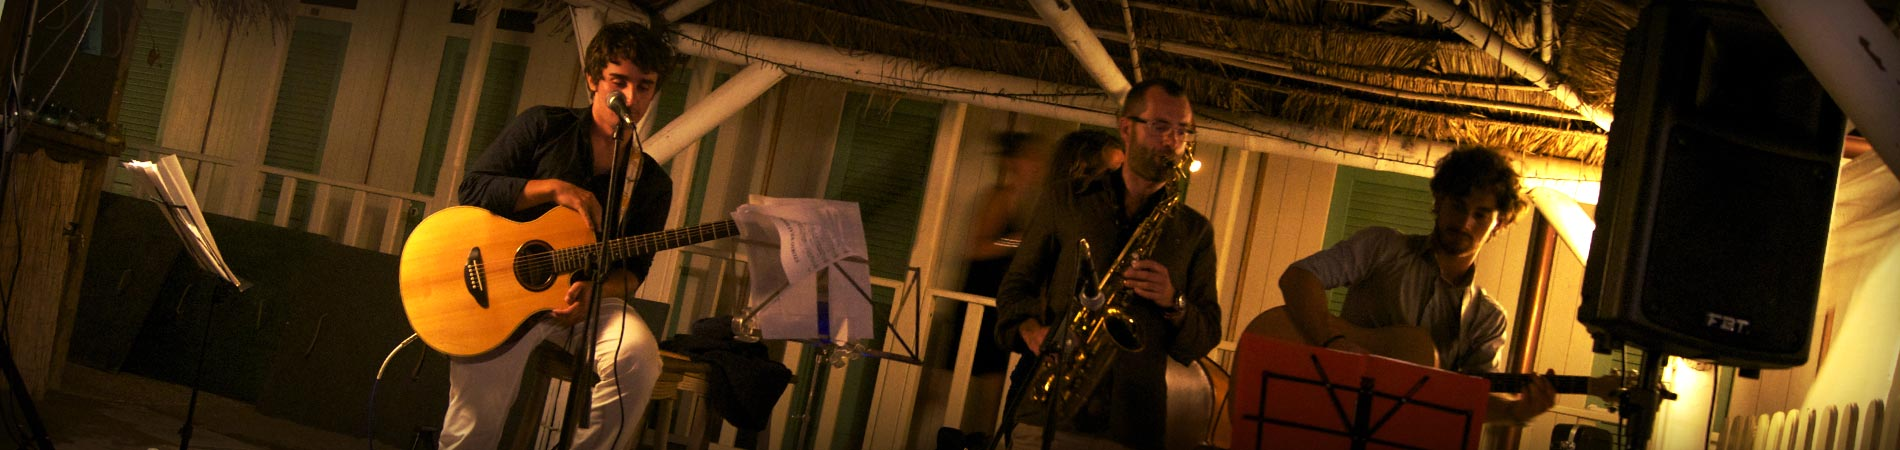 Eventi Musica Jazz/Blues